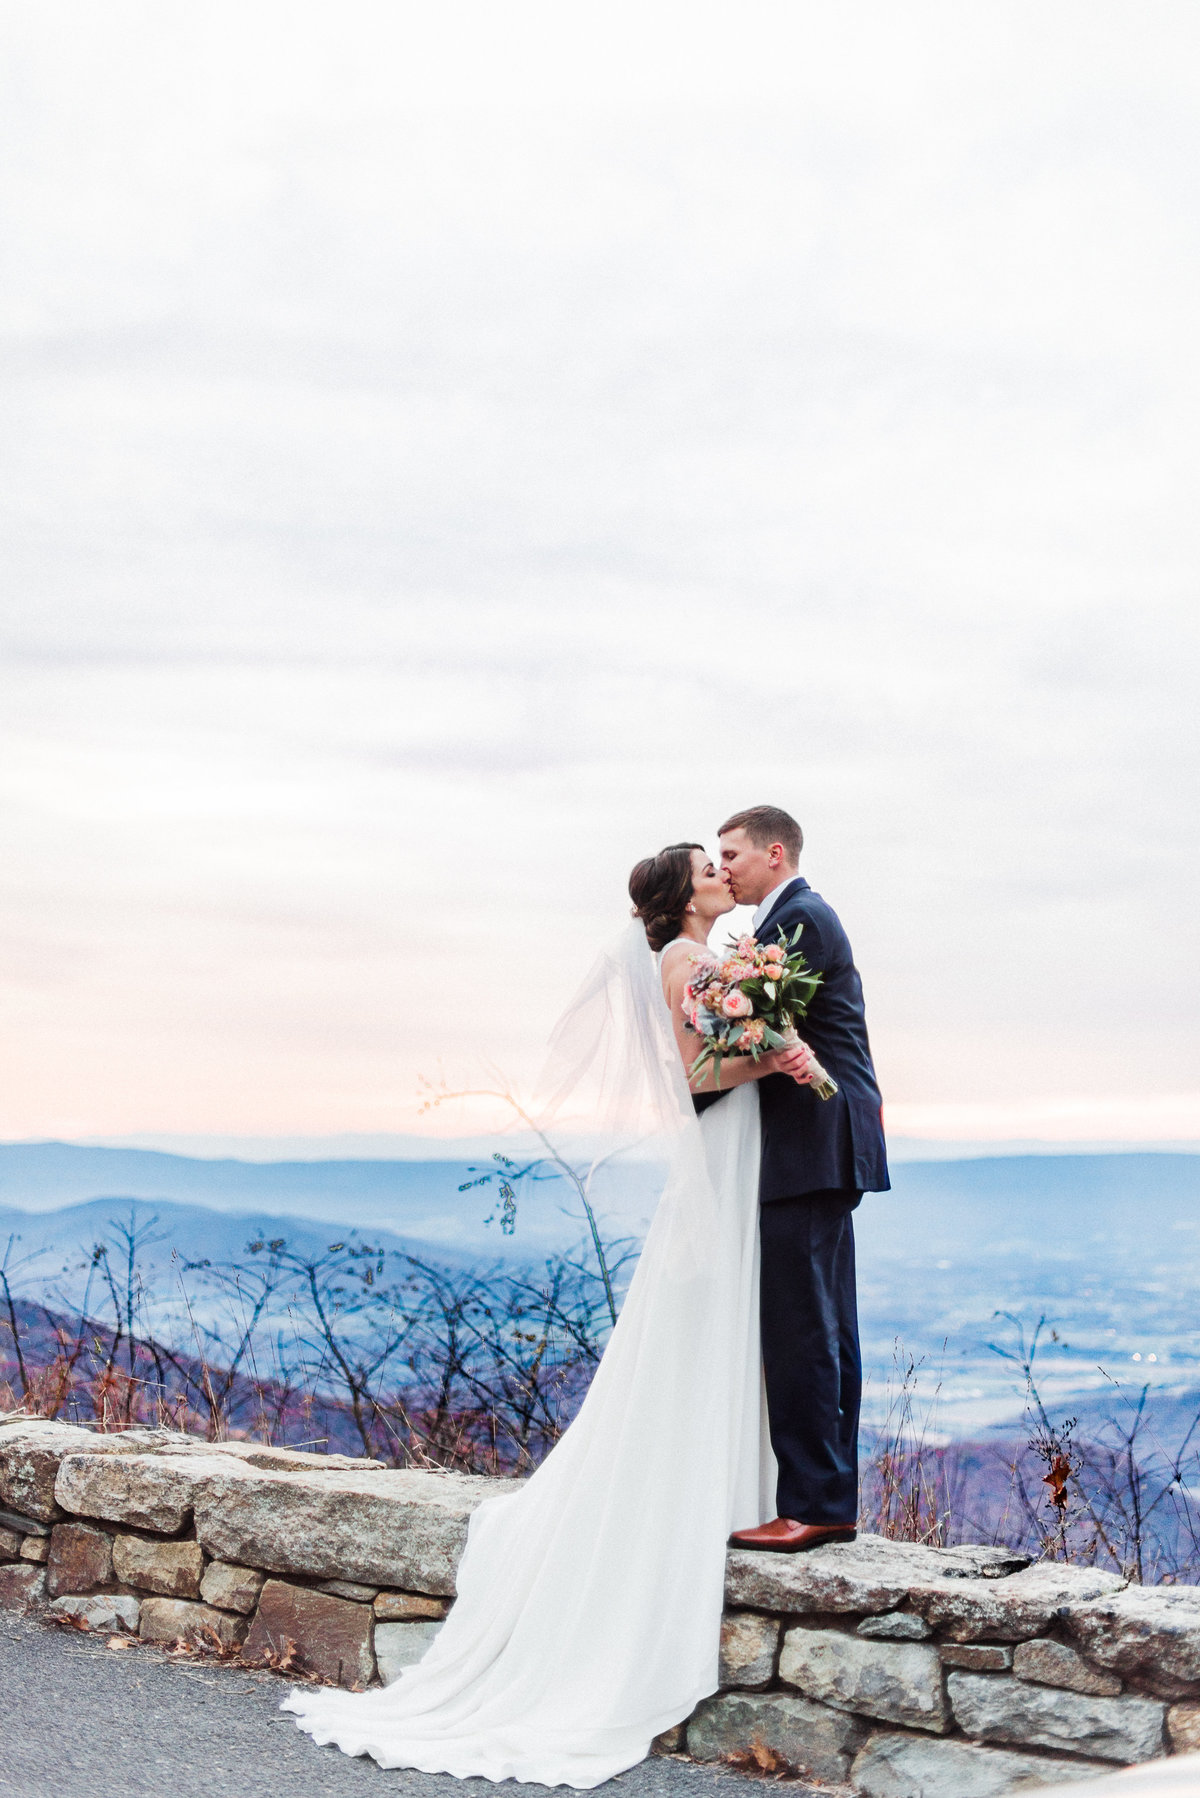 shenandoah-national-park-wedding-skyline-drive-elopement-shenandoah-national-park-elopement-virginia-adventure-photographer-virginia-adventure-elopement-photographer_02